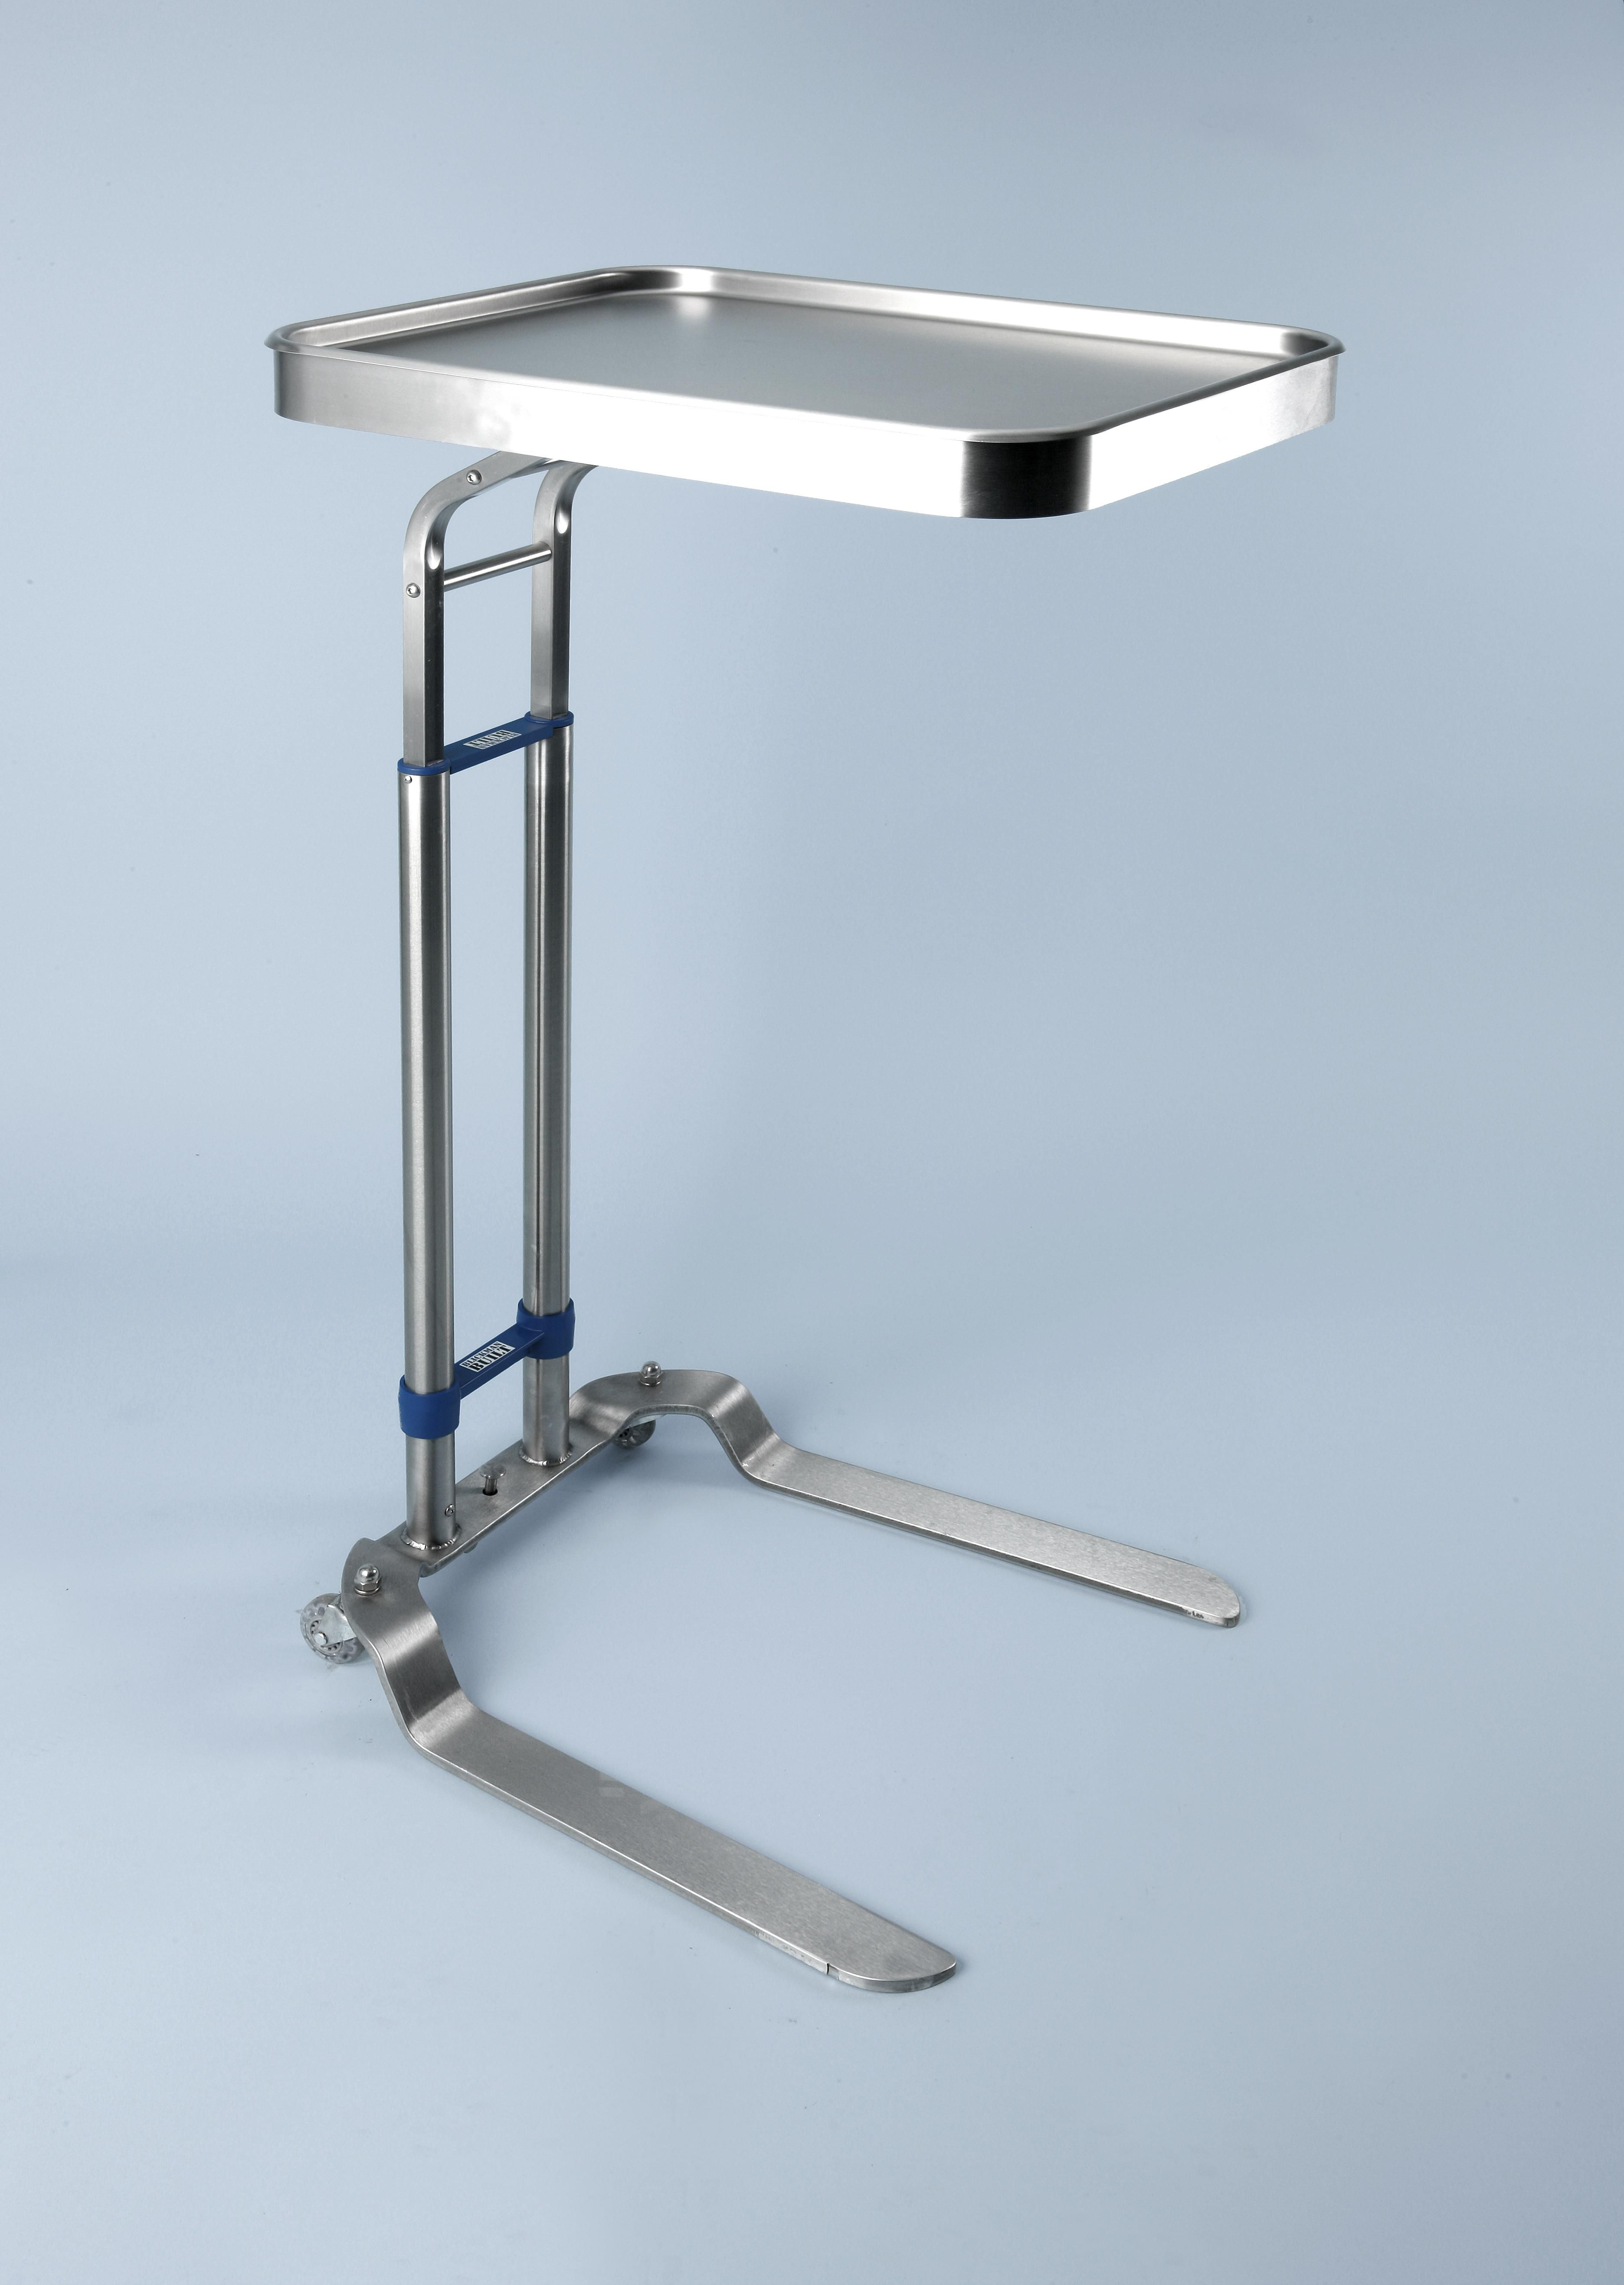 Blickman Health Stainless Steel Mayo Stand - 16